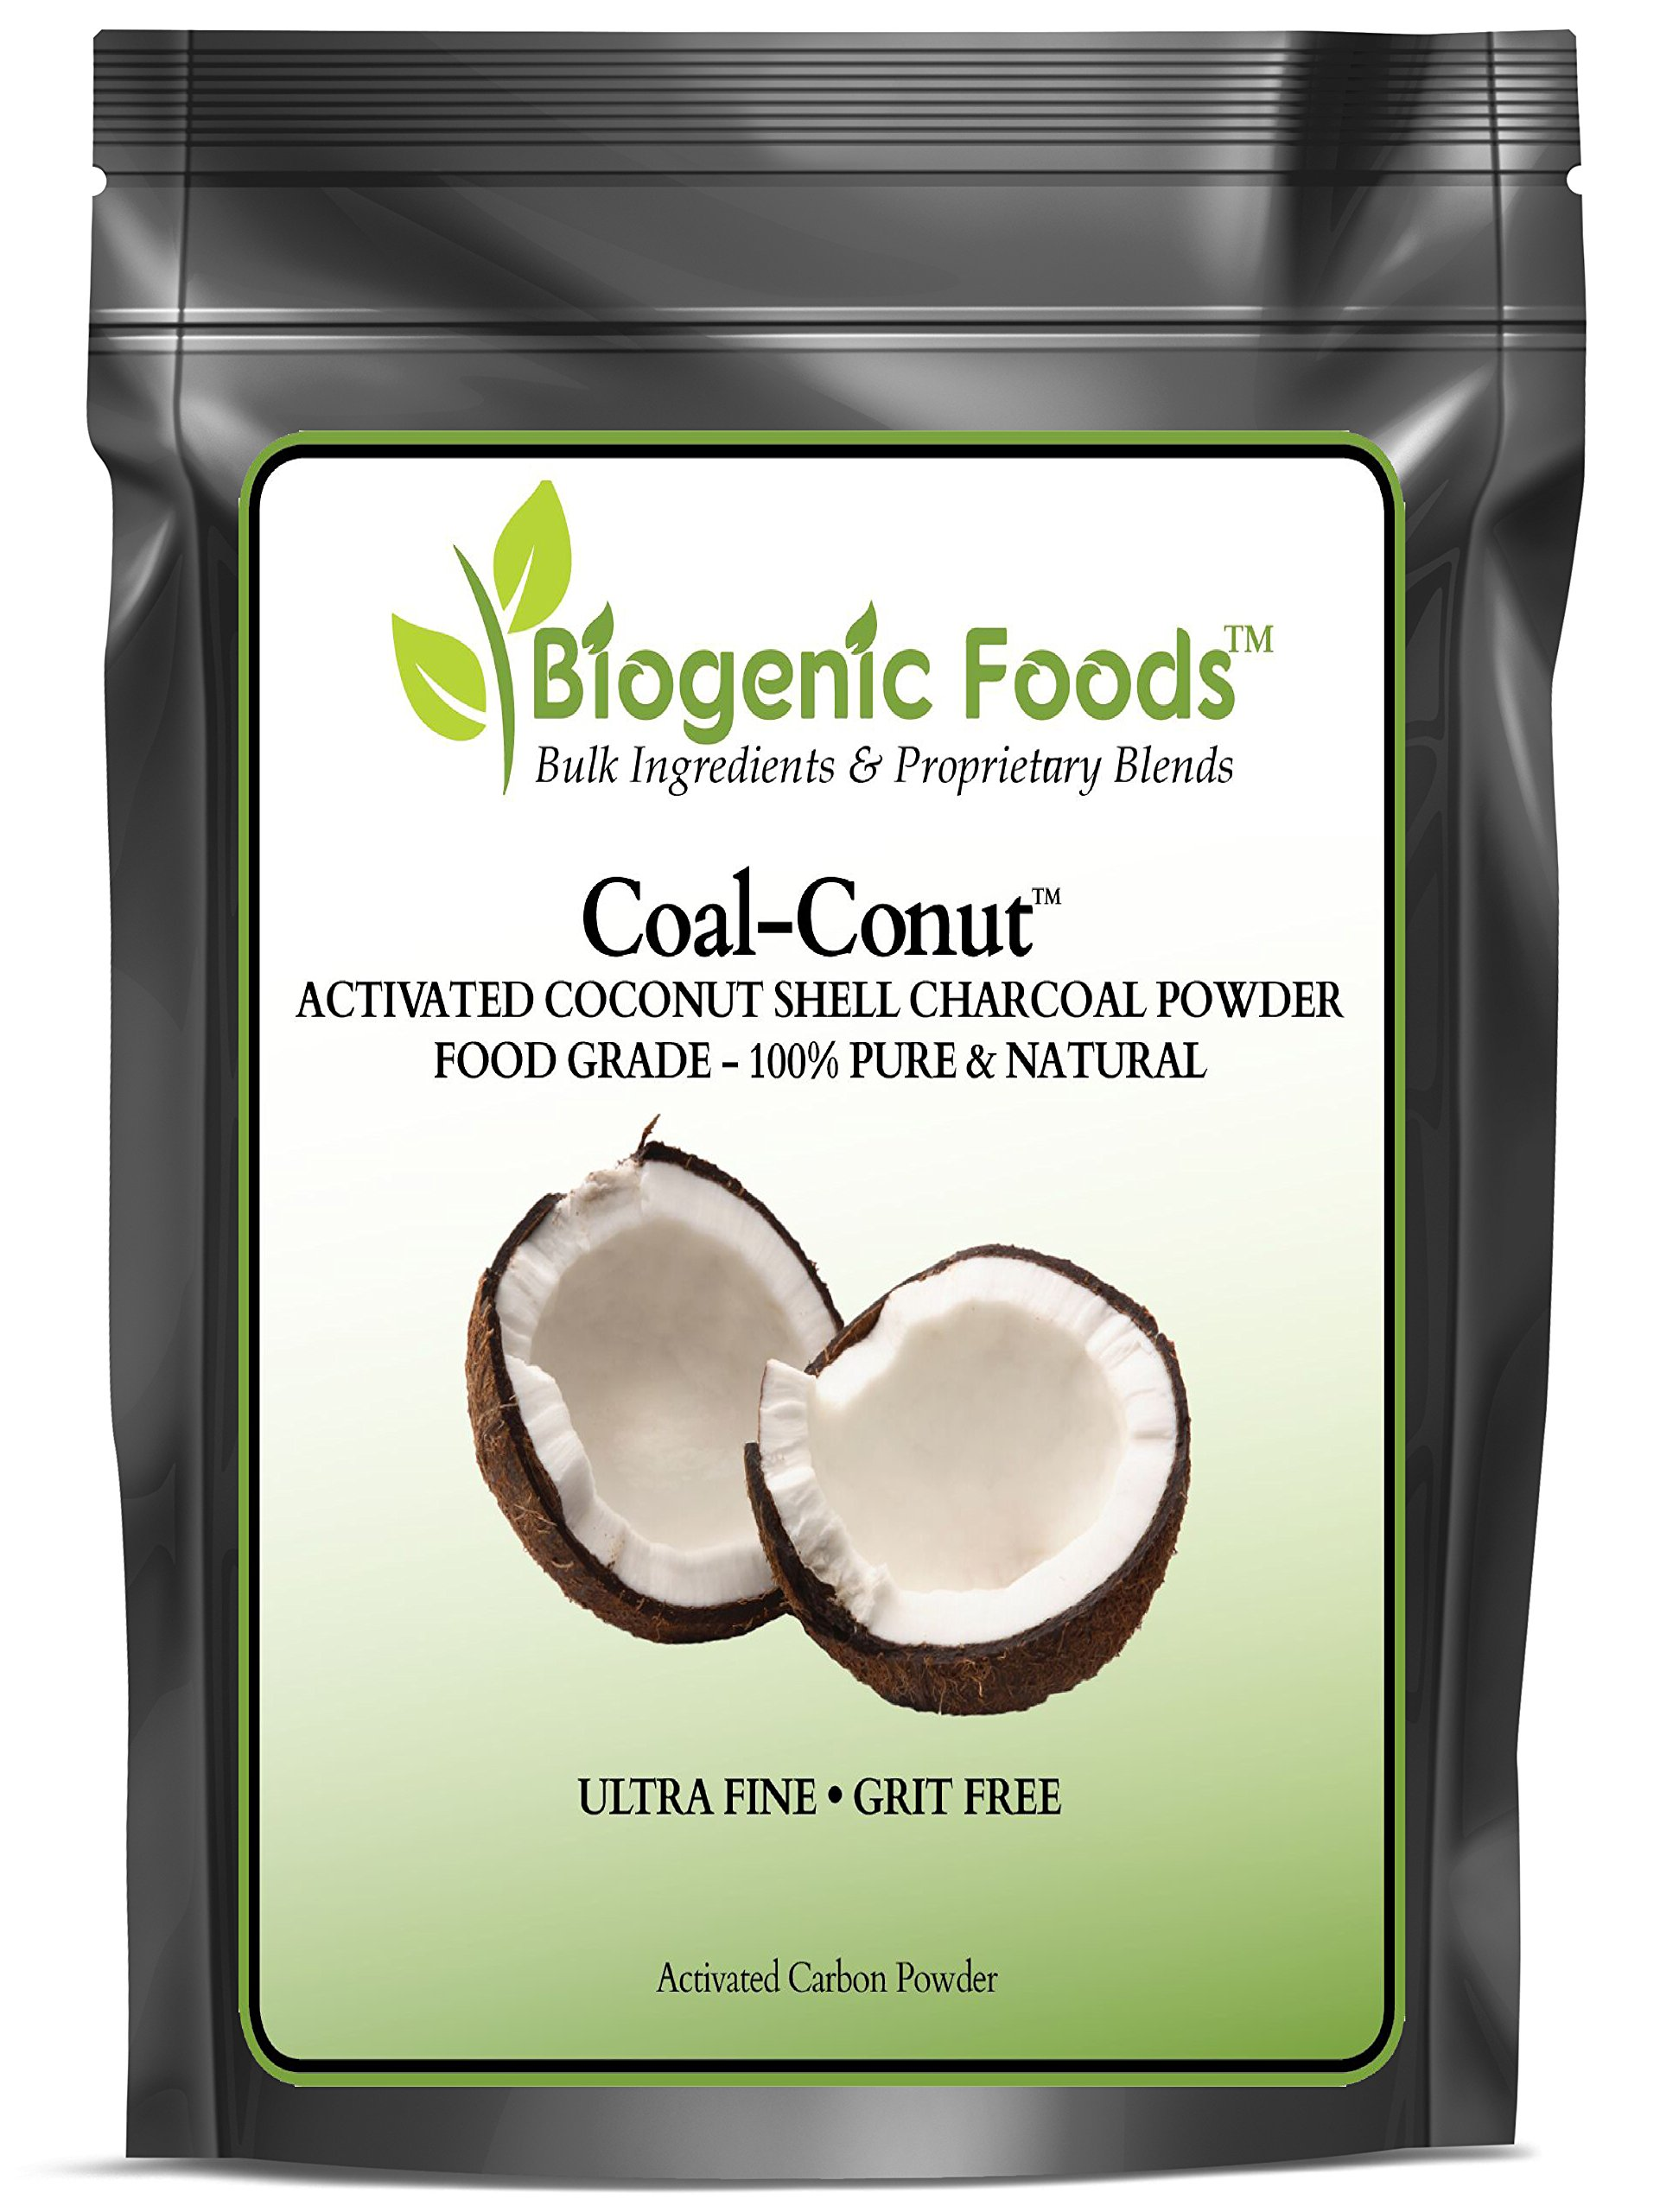 Coal-Conut (TM) - Activated Coconut Shell Charcoal Fine Husk Food Grade Powder (Ultra-Fine) - Organic Approved, 5 lb